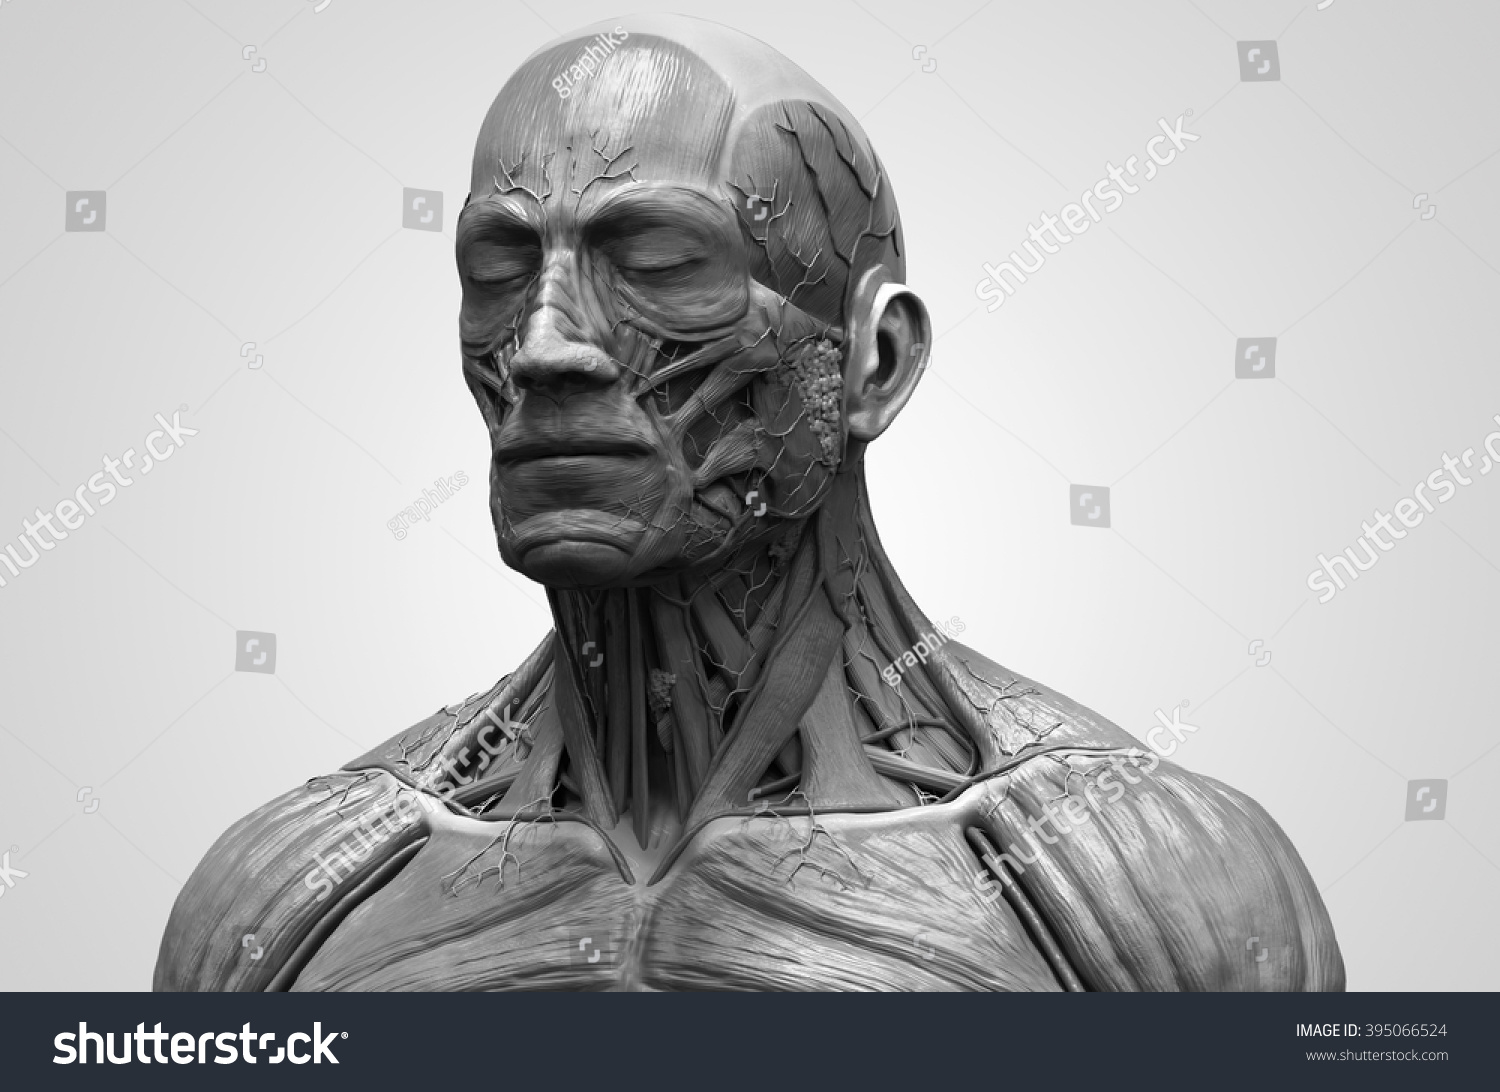 Medical Reference Human Anatomy Muscular Structure Stockillustration